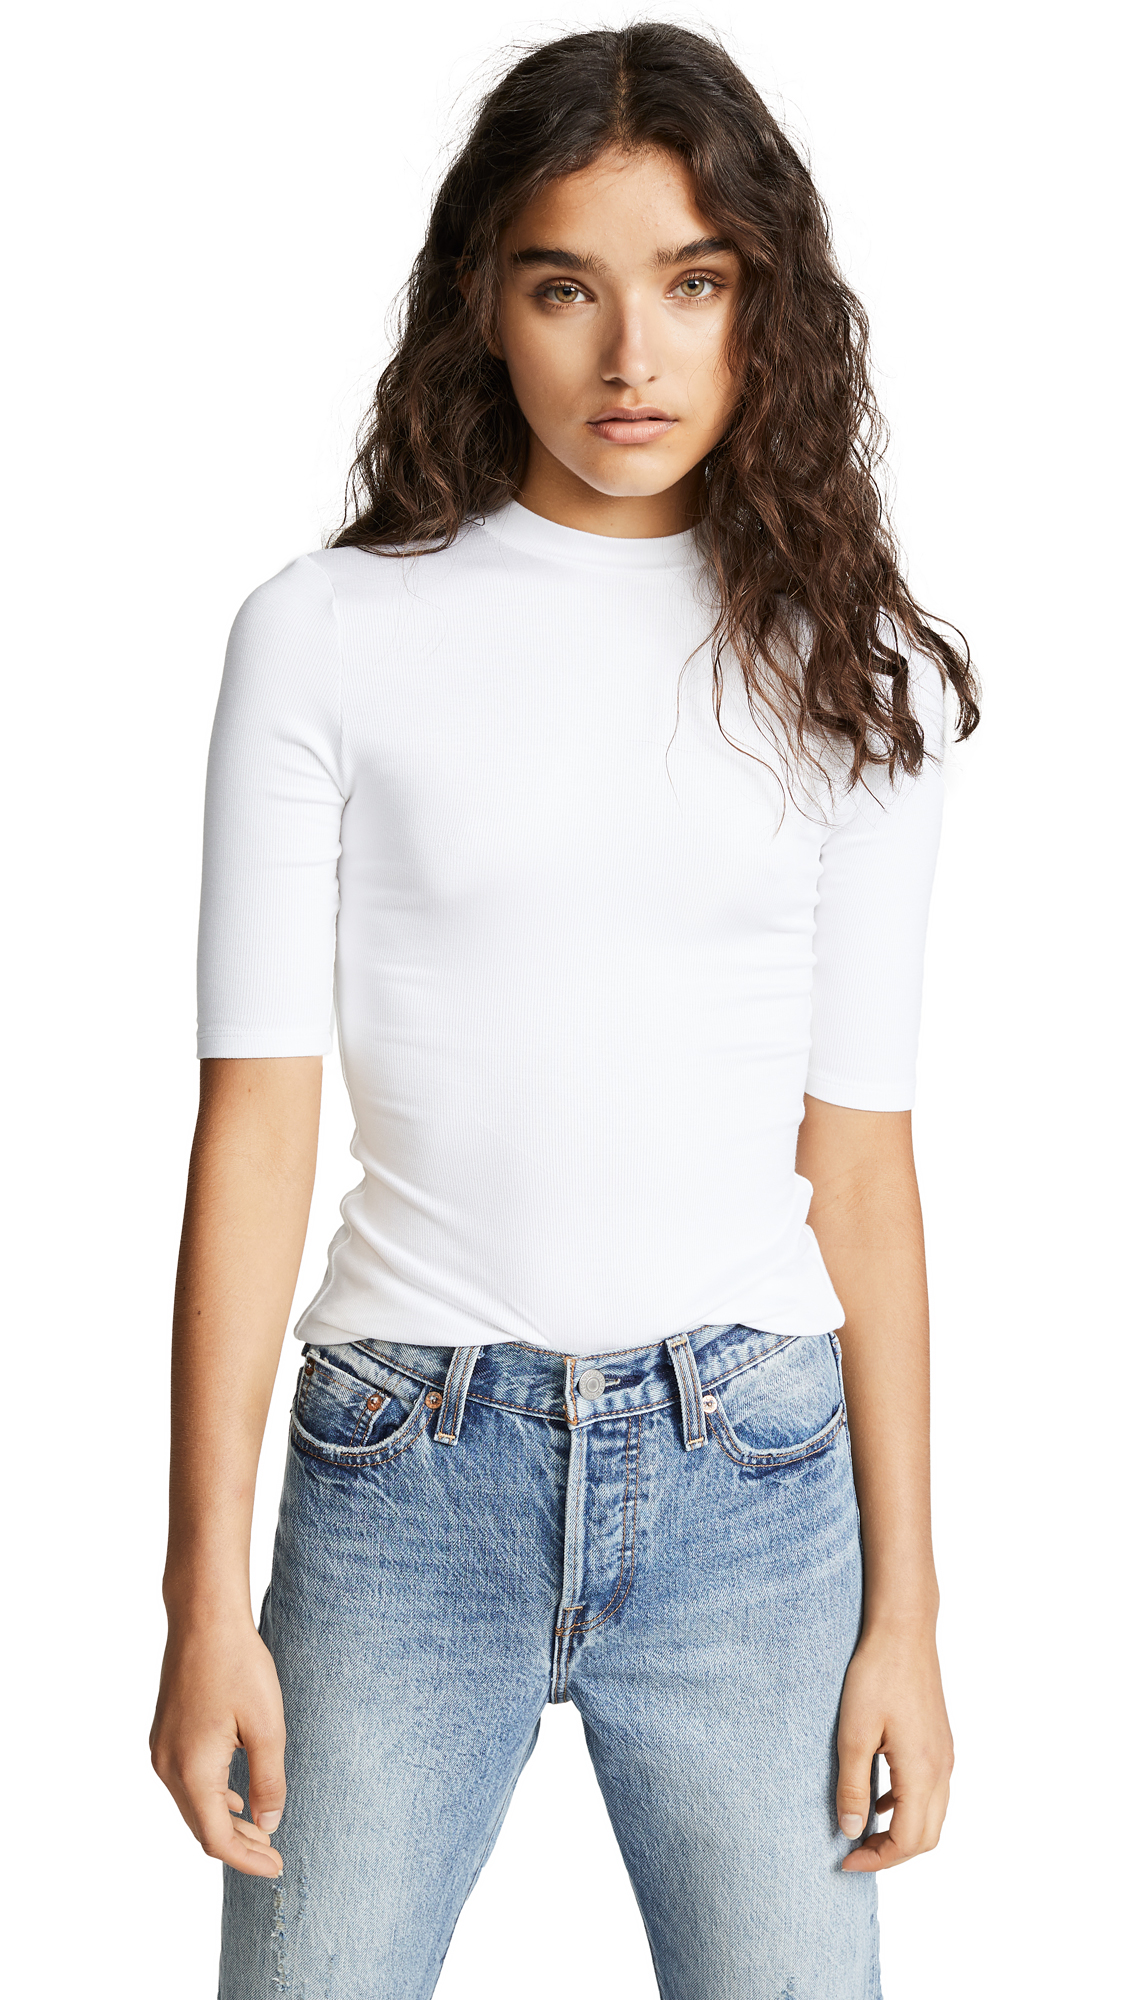 Mackay Ribbed Elbow Sleeve Top in White